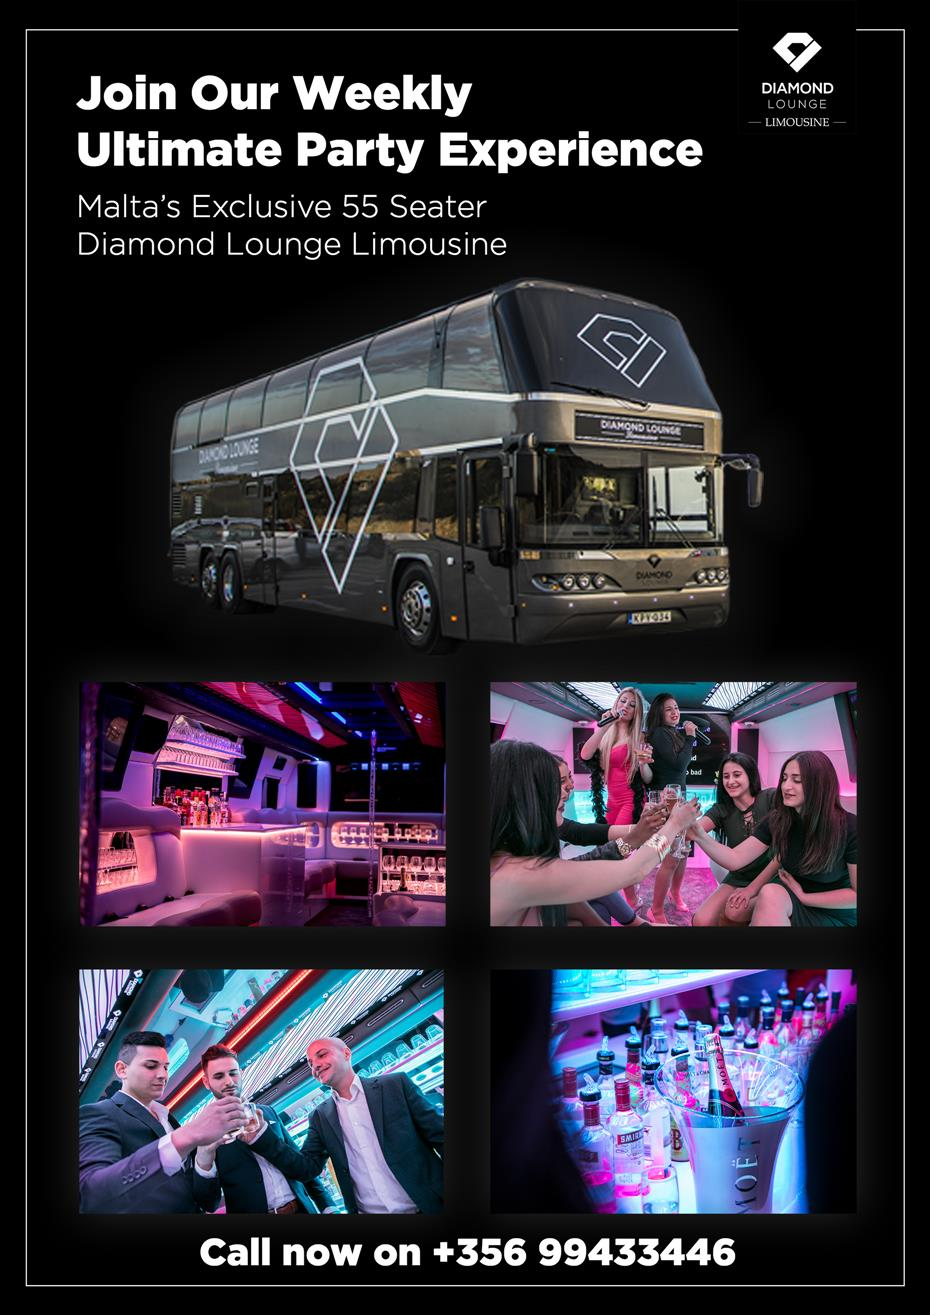 Diamond Lounge Limousine: The Ultimate Party Experience In Malta flyer